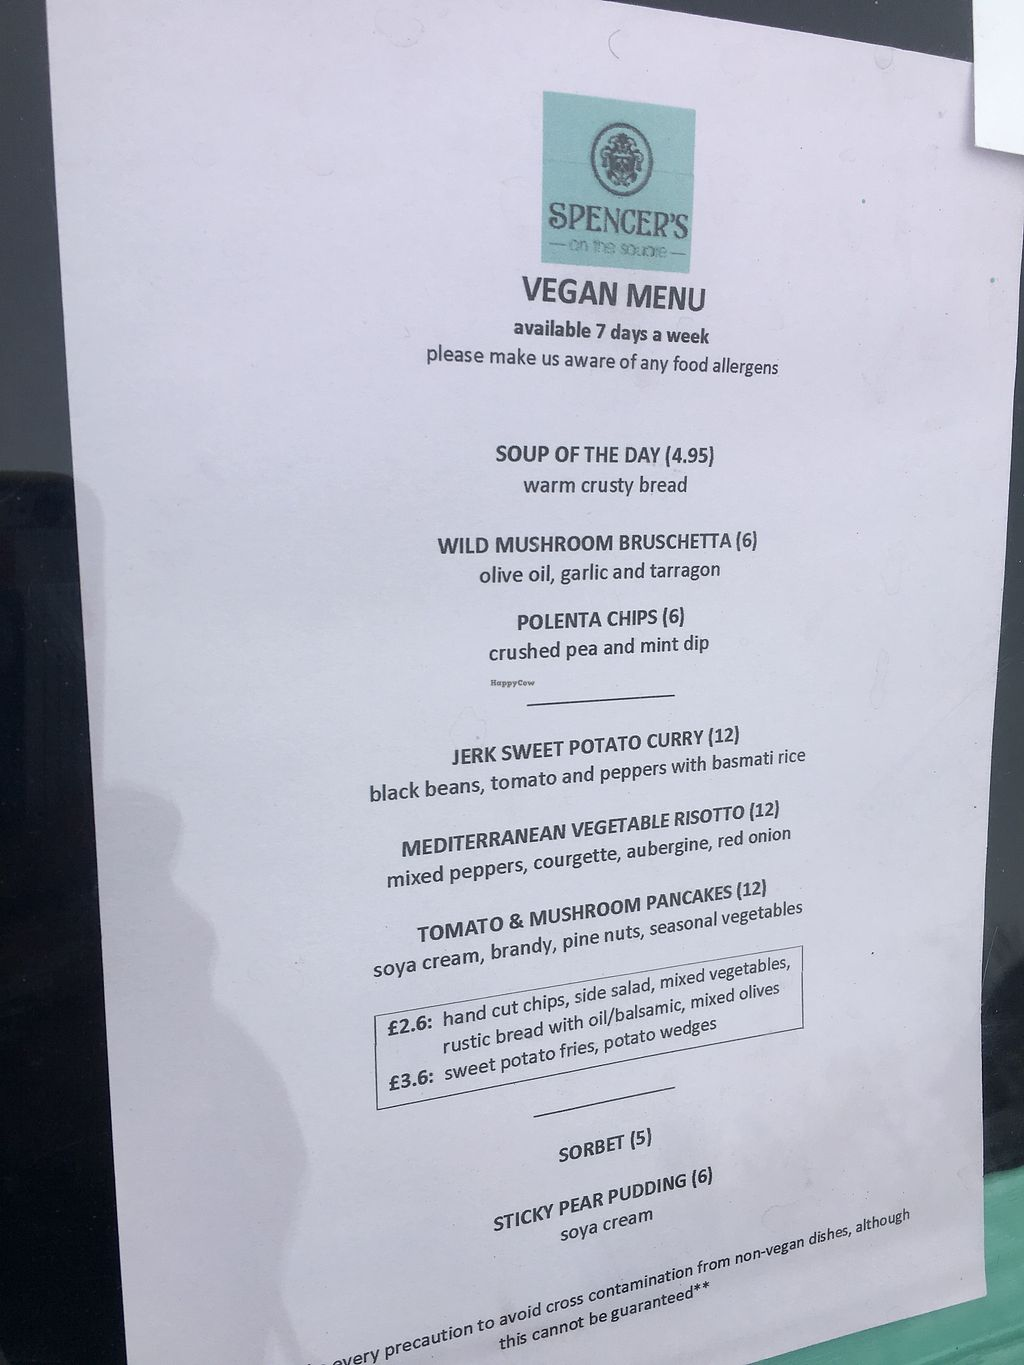 """Photo of Spencer's On The Square  by <a href=""""/members/profile/Veganbloke"""">Veganbloke</a> <br/>Menu (April 2018) <br/> April 21, 2018  - <a href='/contact/abuse/image/113639/389188'>Report</a>"""